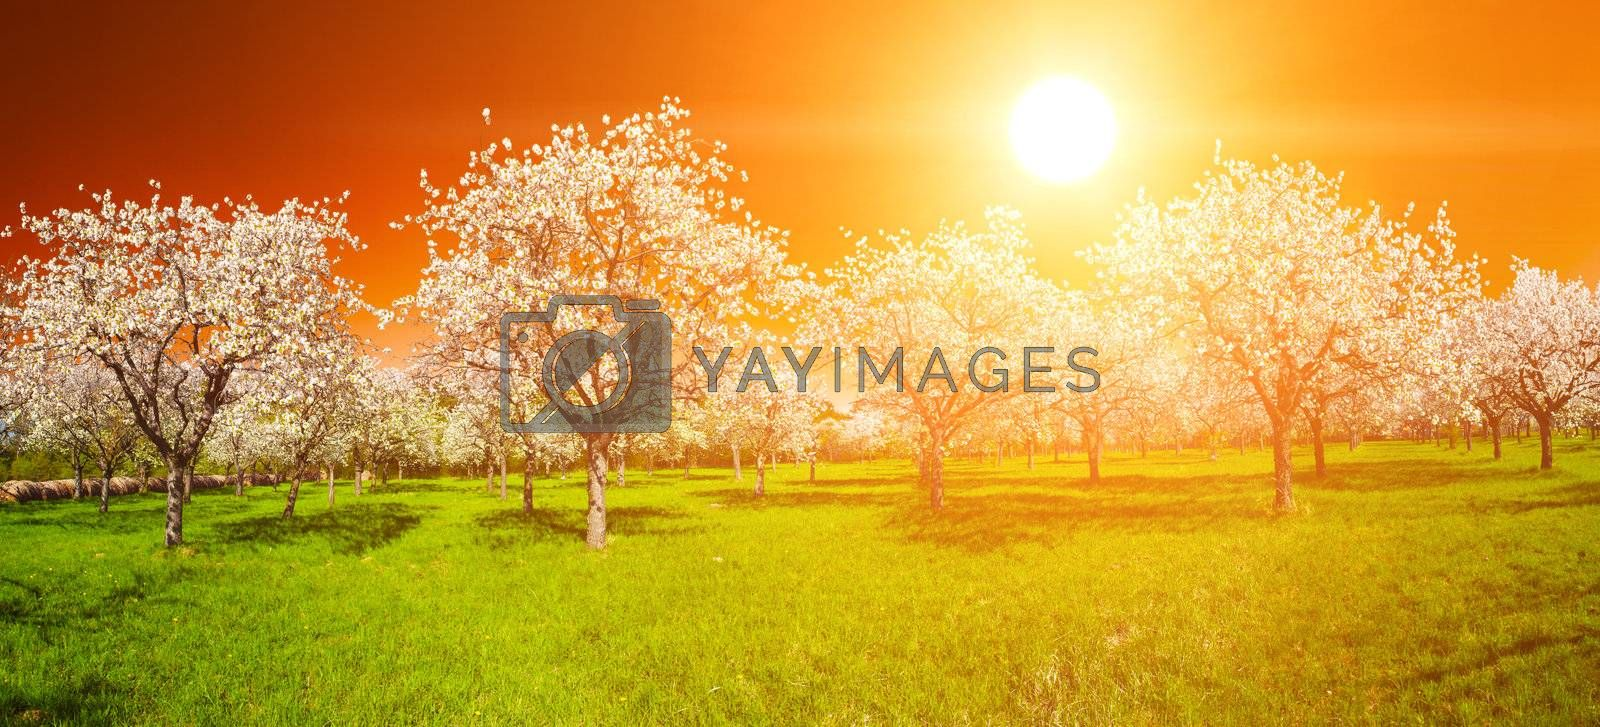 Apple Orchard in the middle of the spring season at sunset. Panoramic photo.